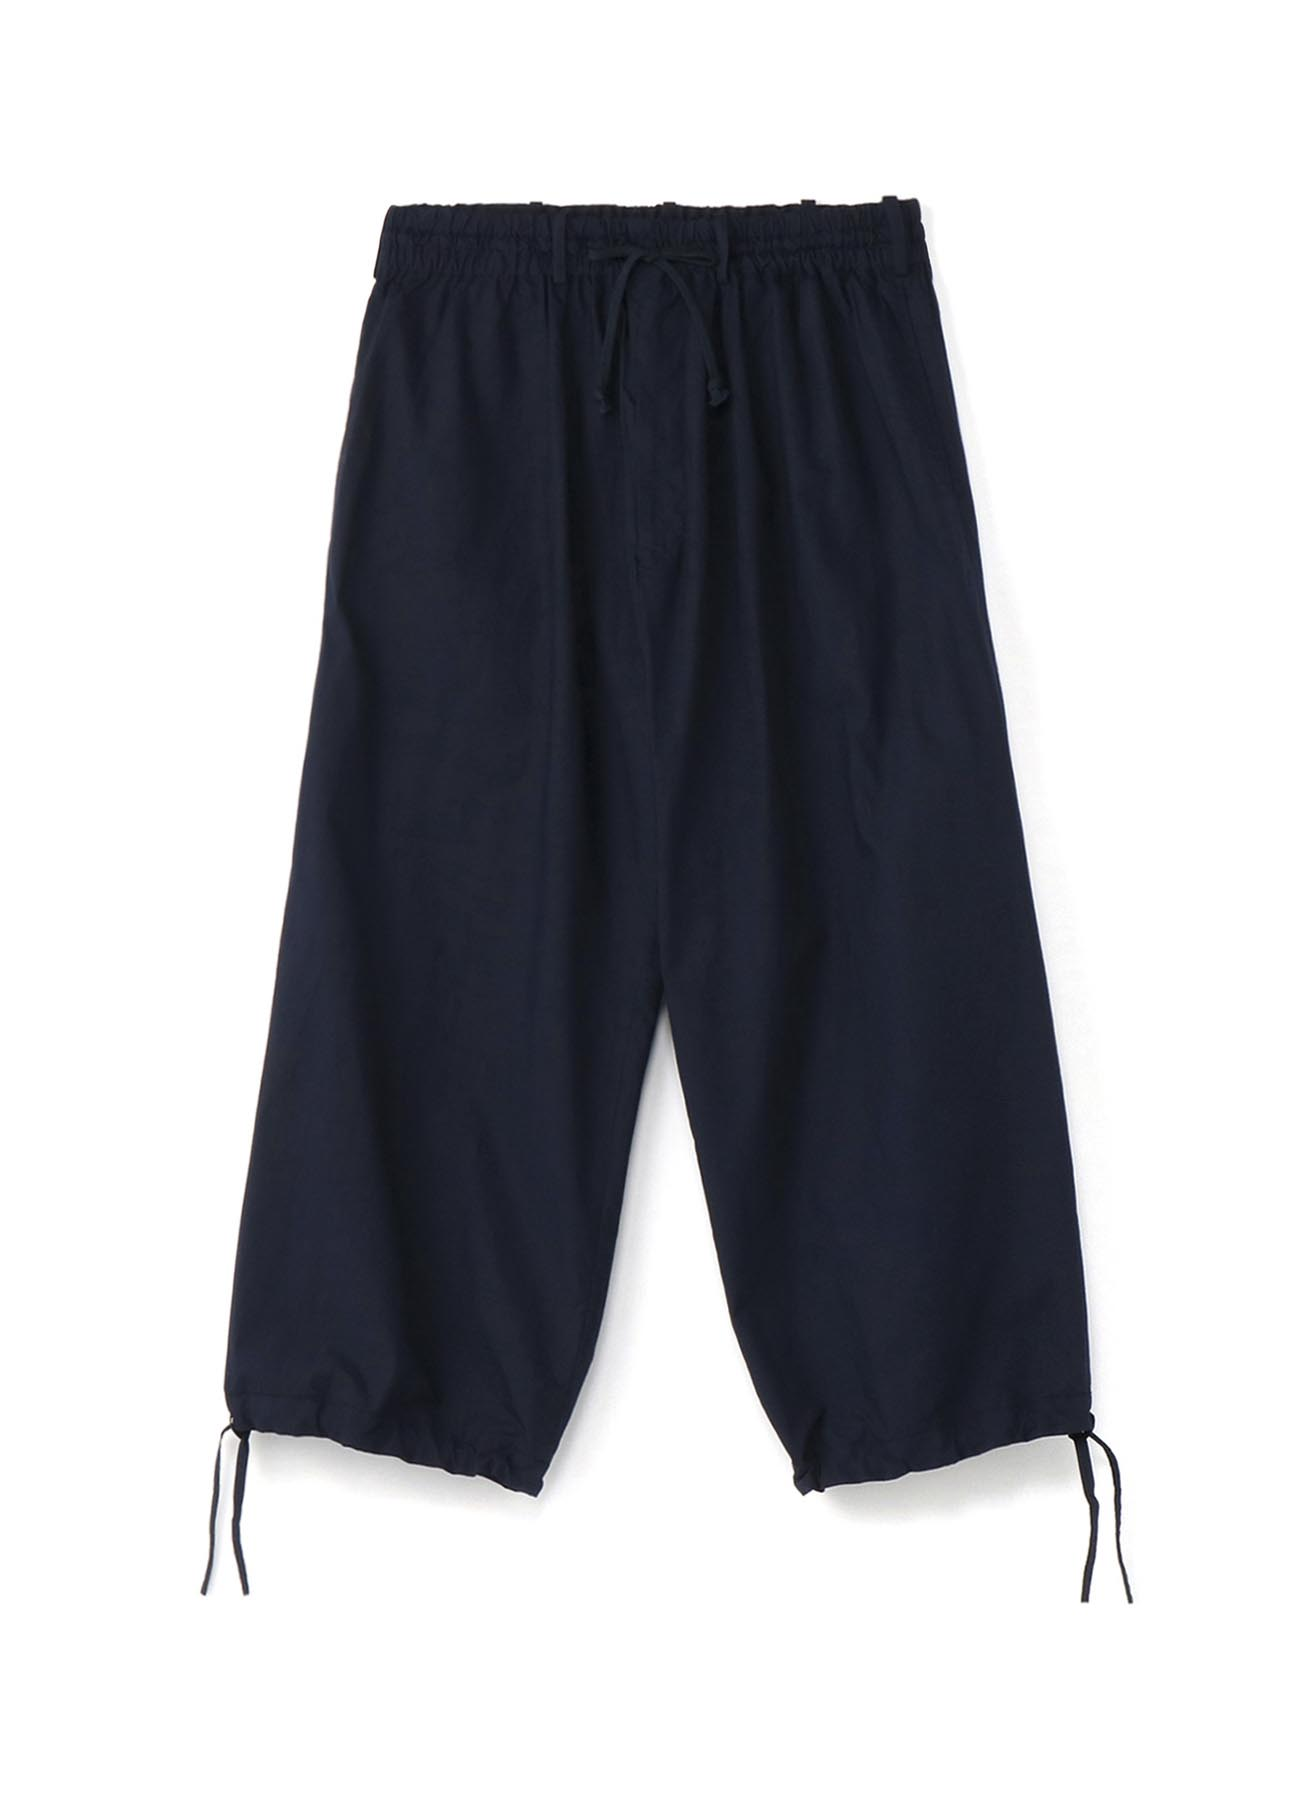 Cotton Type Lighter Balloon Pants